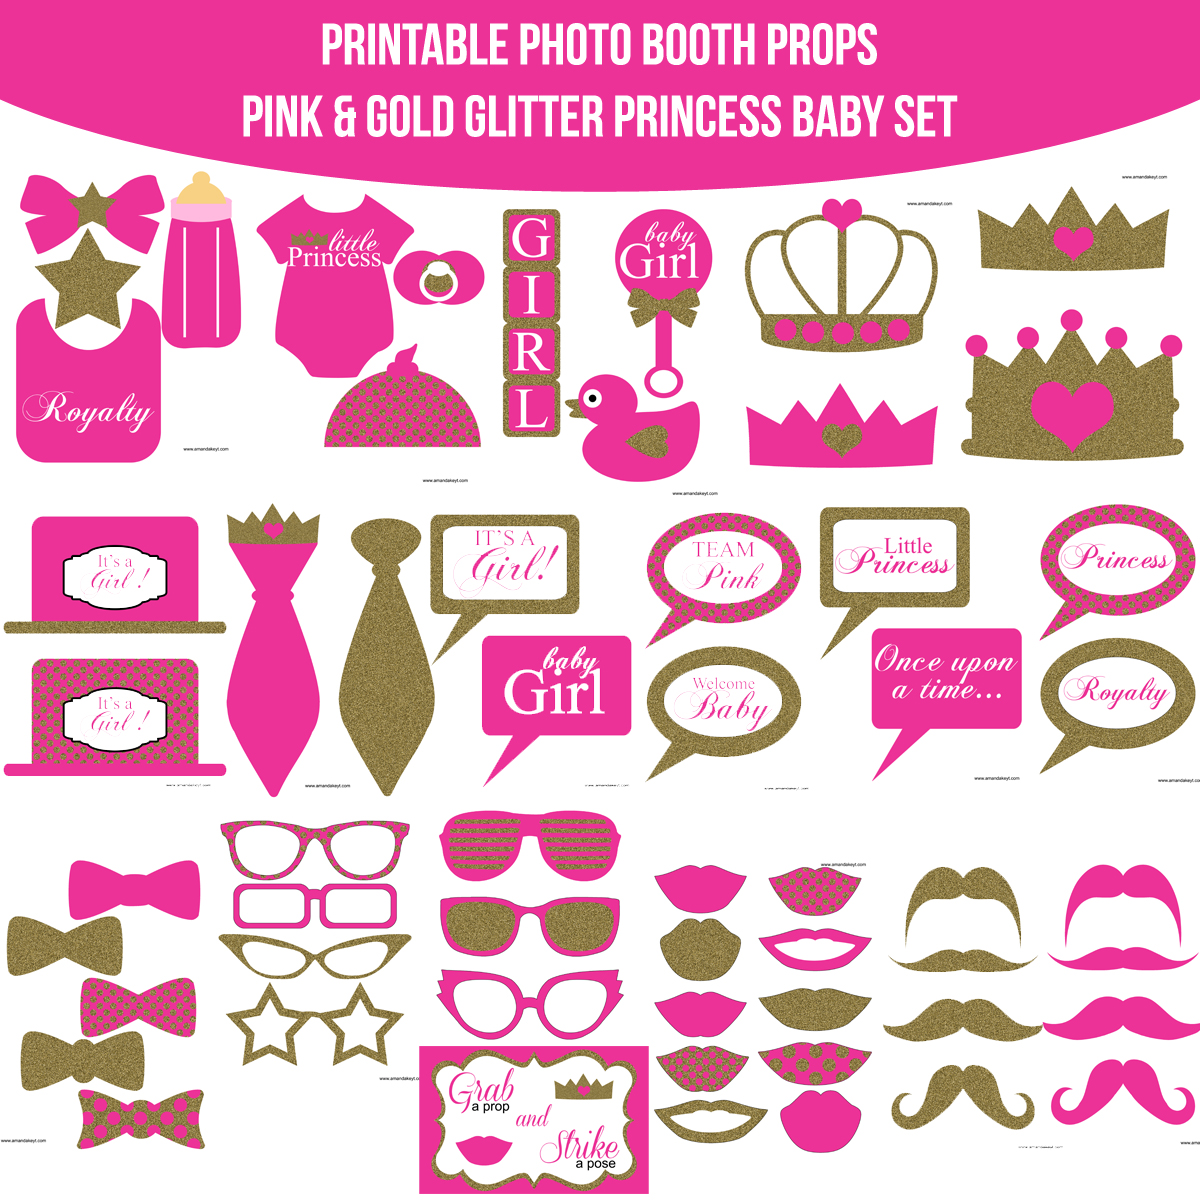 Printable Photo Booth Prop